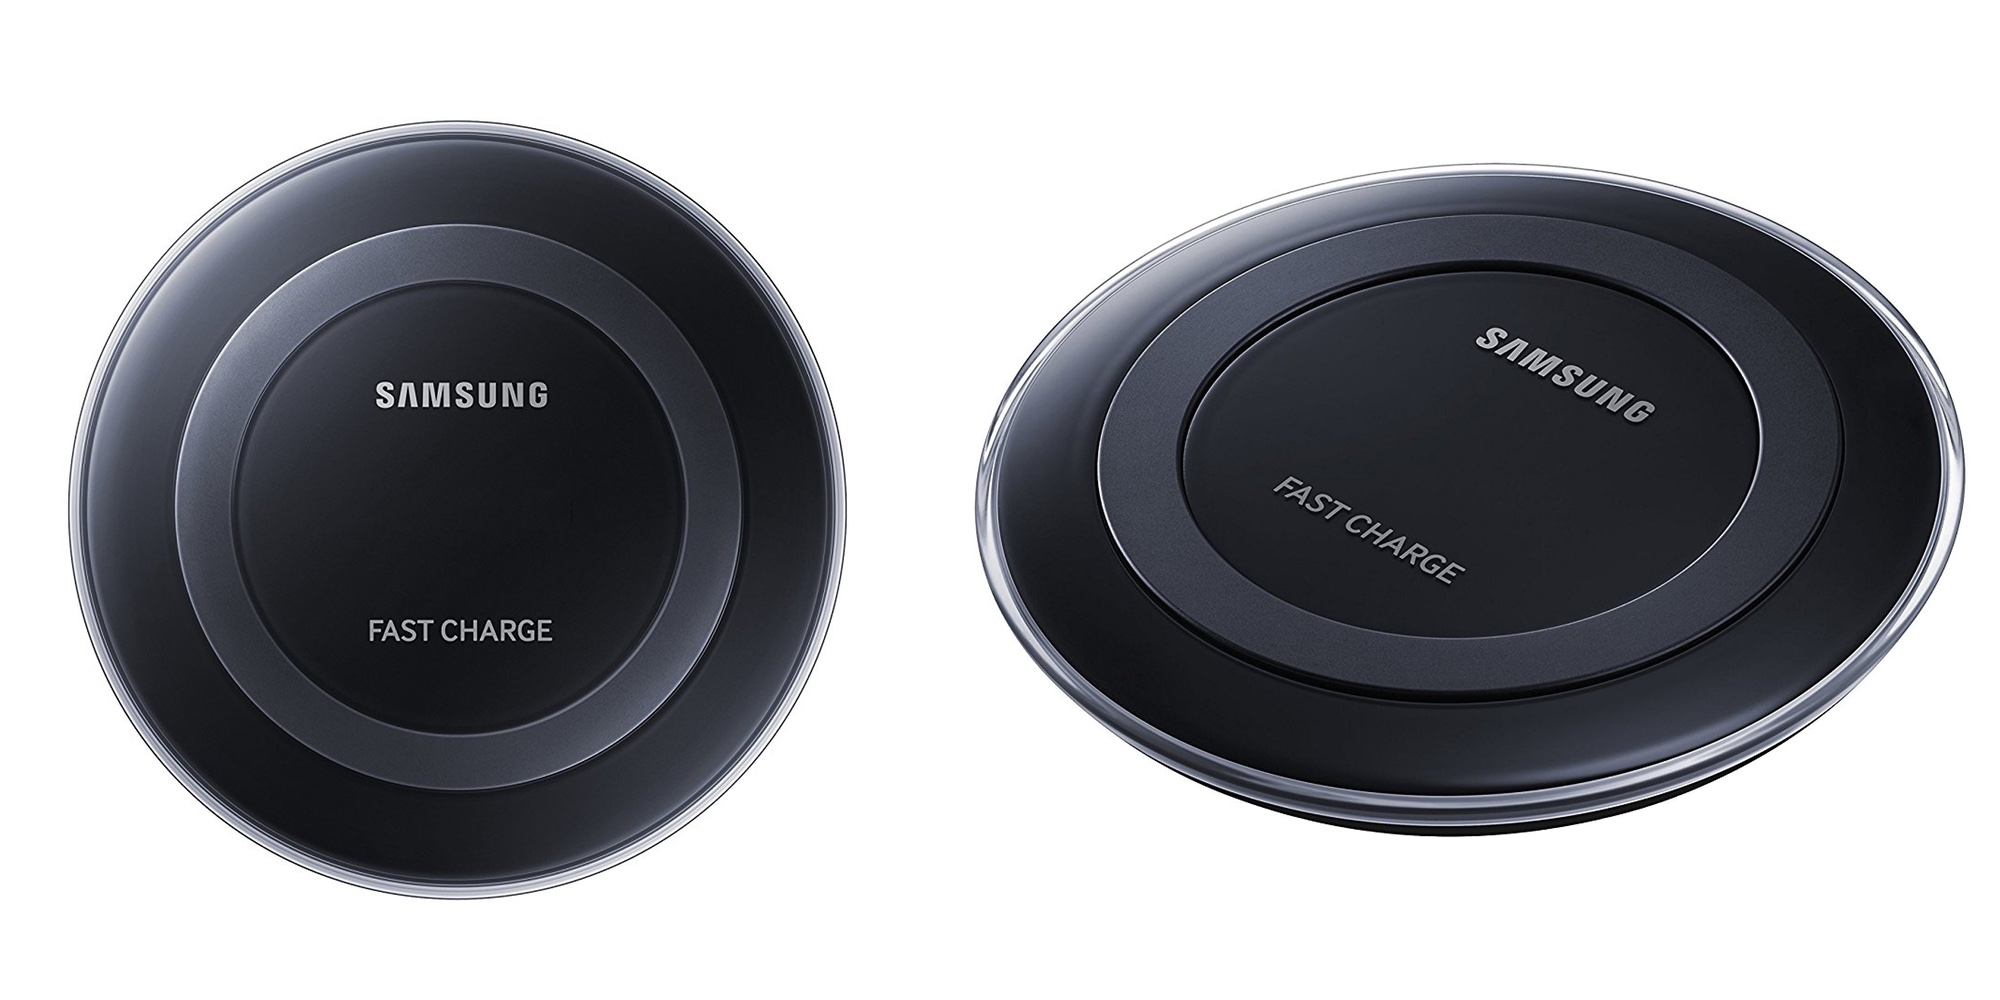 Smartphone Accessories: Samsung 9W Qi Charging Pad $20 Prime shipped, more